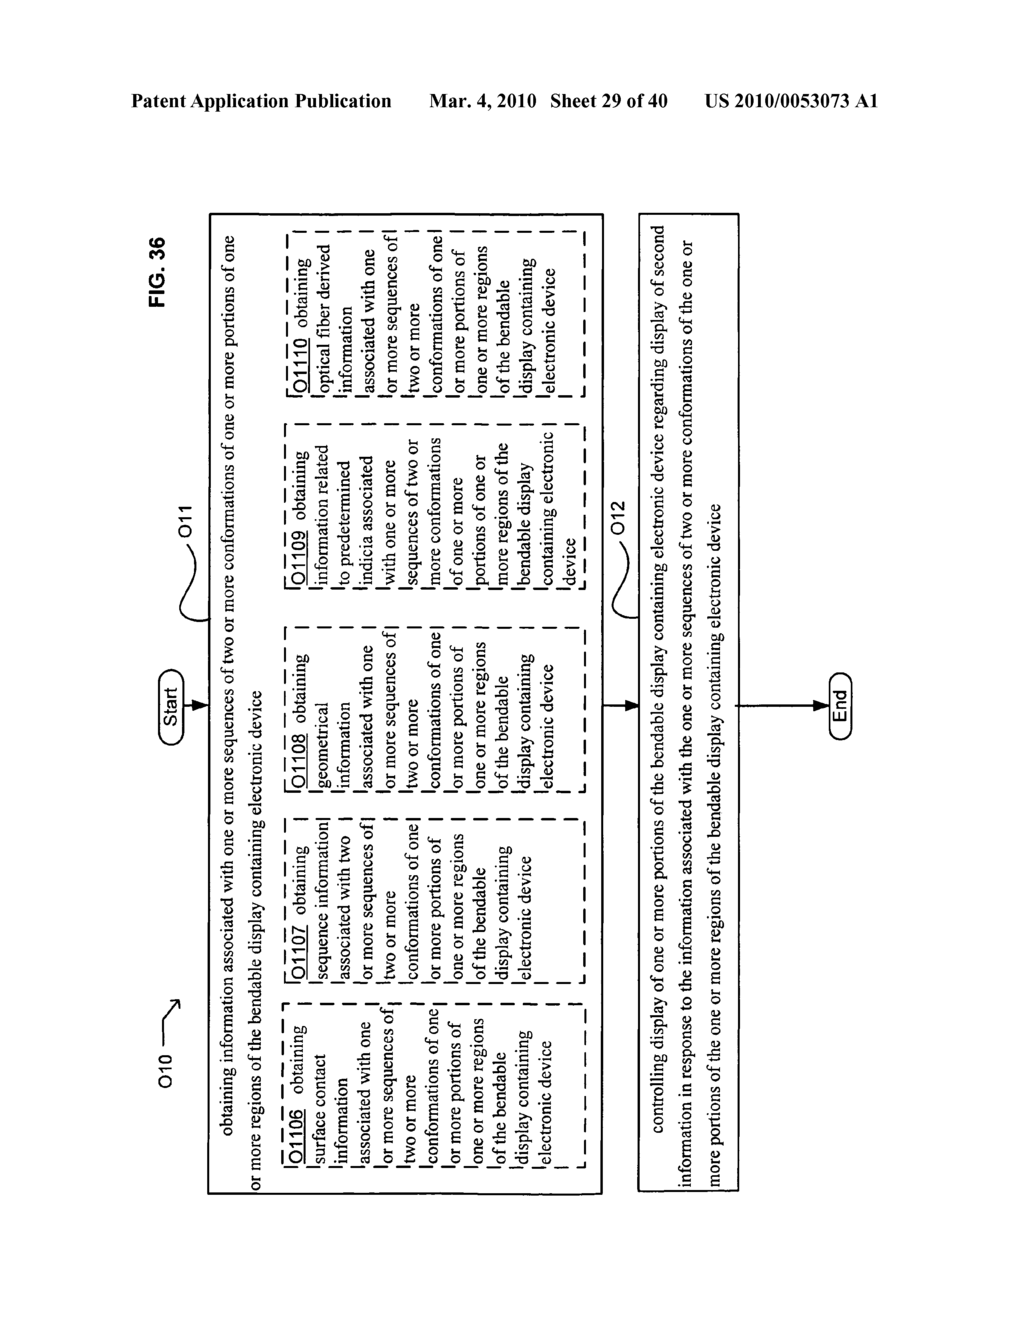 Display control based on bendable display containing electronic device conformation sequence status - diagram, schematic, and image 31